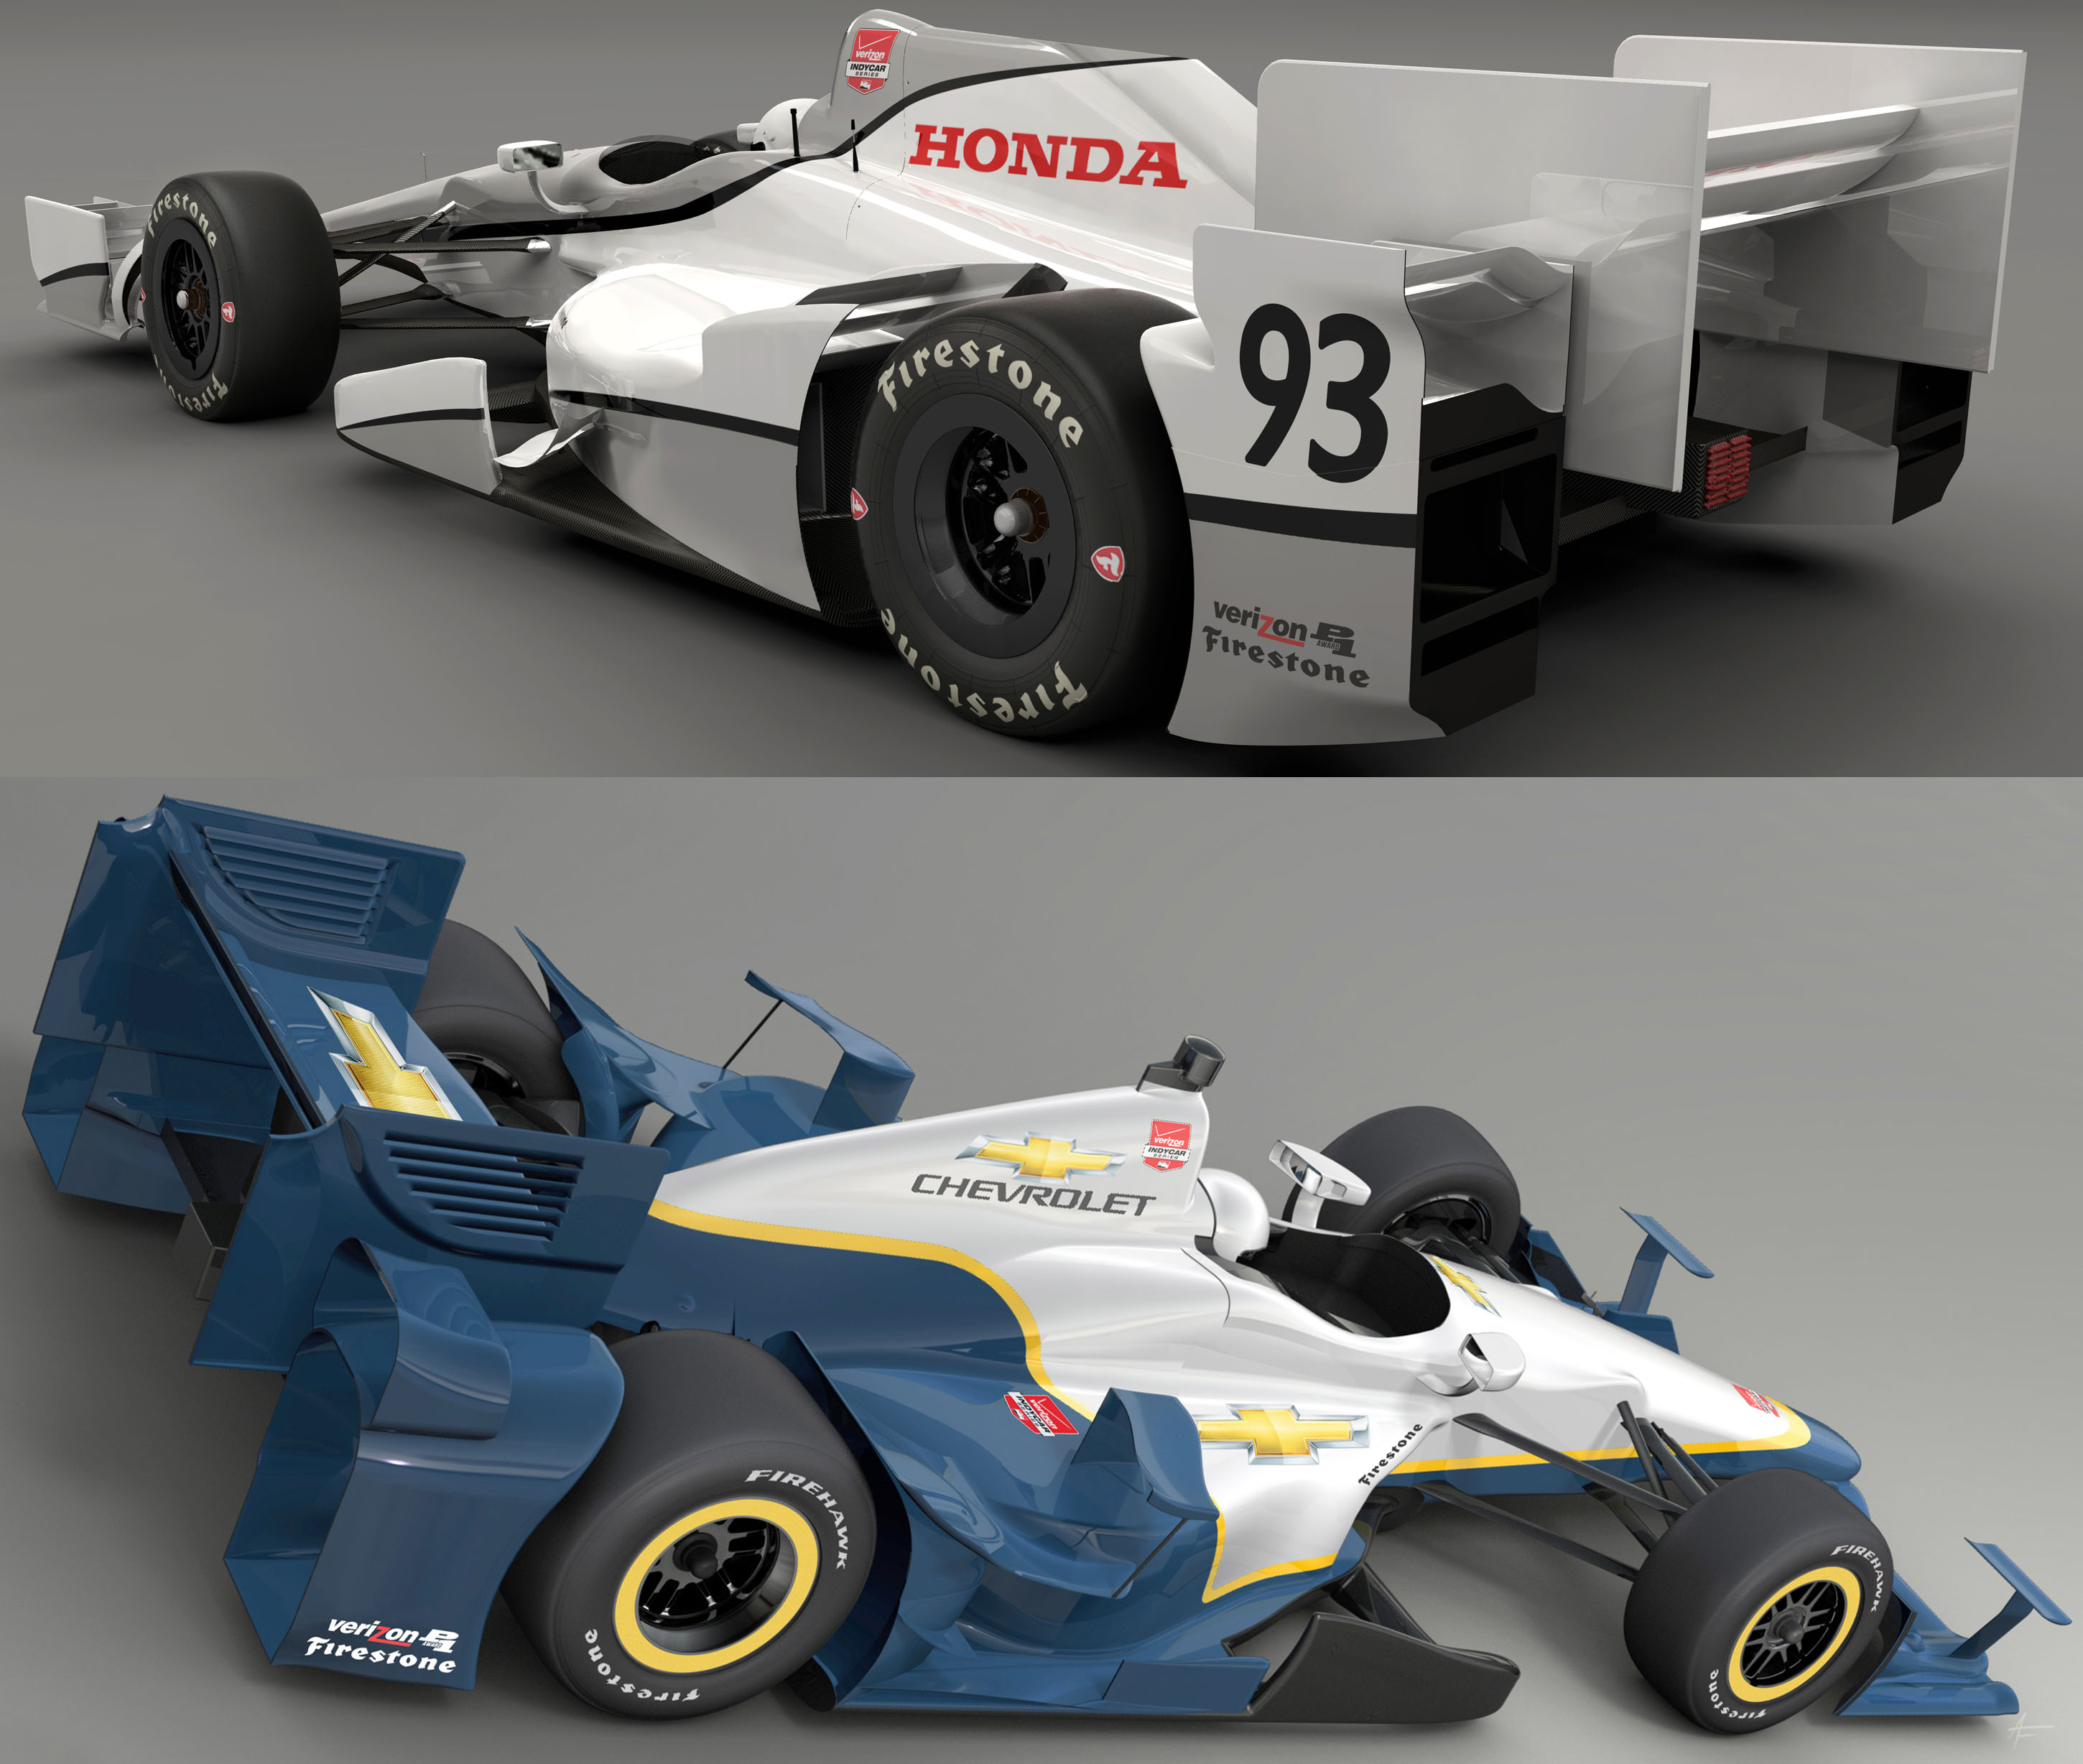 2015 IndyCar Aero: Honda/Chevy Side-by-Side Comparison